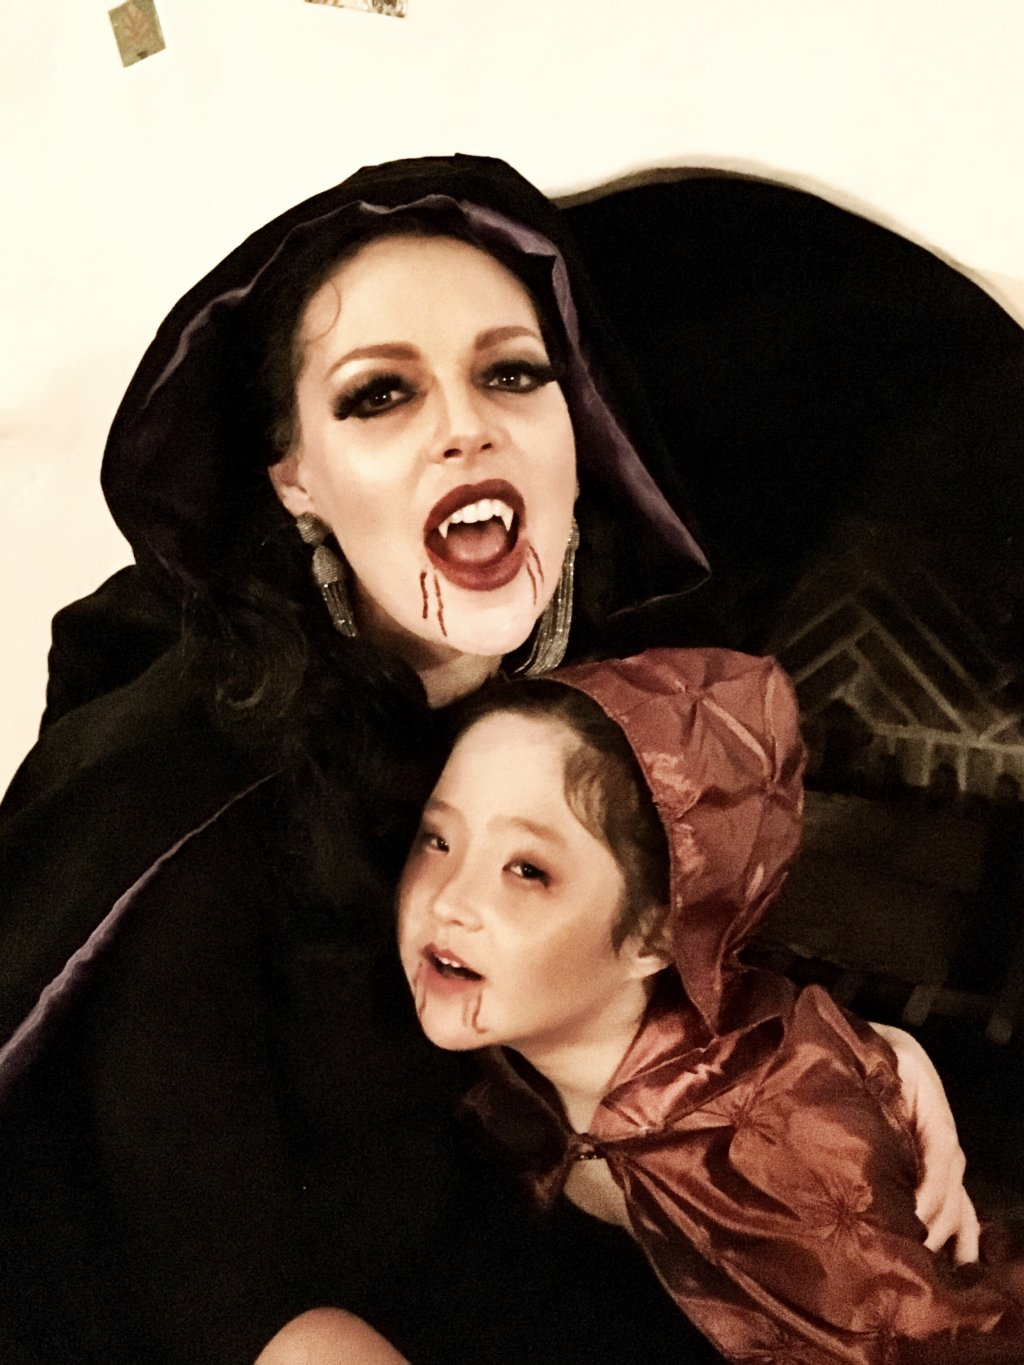 Halloween vampires - Katherine Heigl and daughter Naleigh